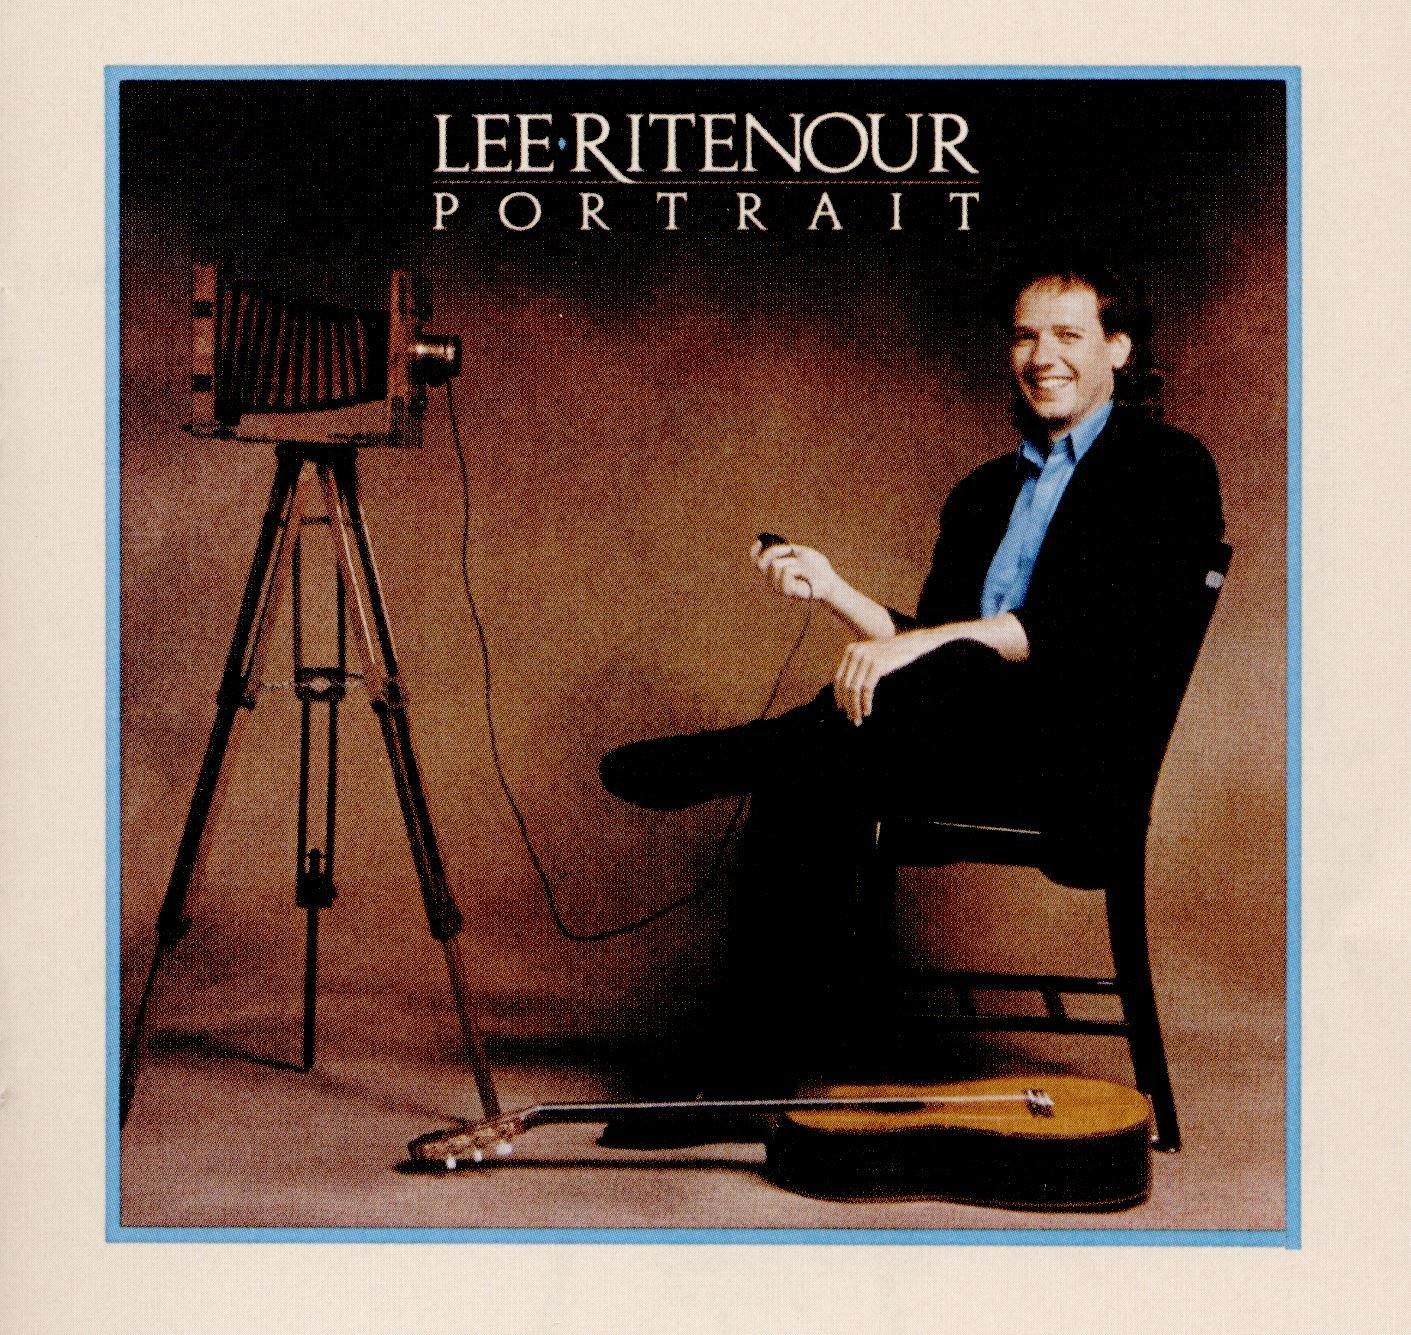 CD : Lee Ritenour - Portrait (CD)